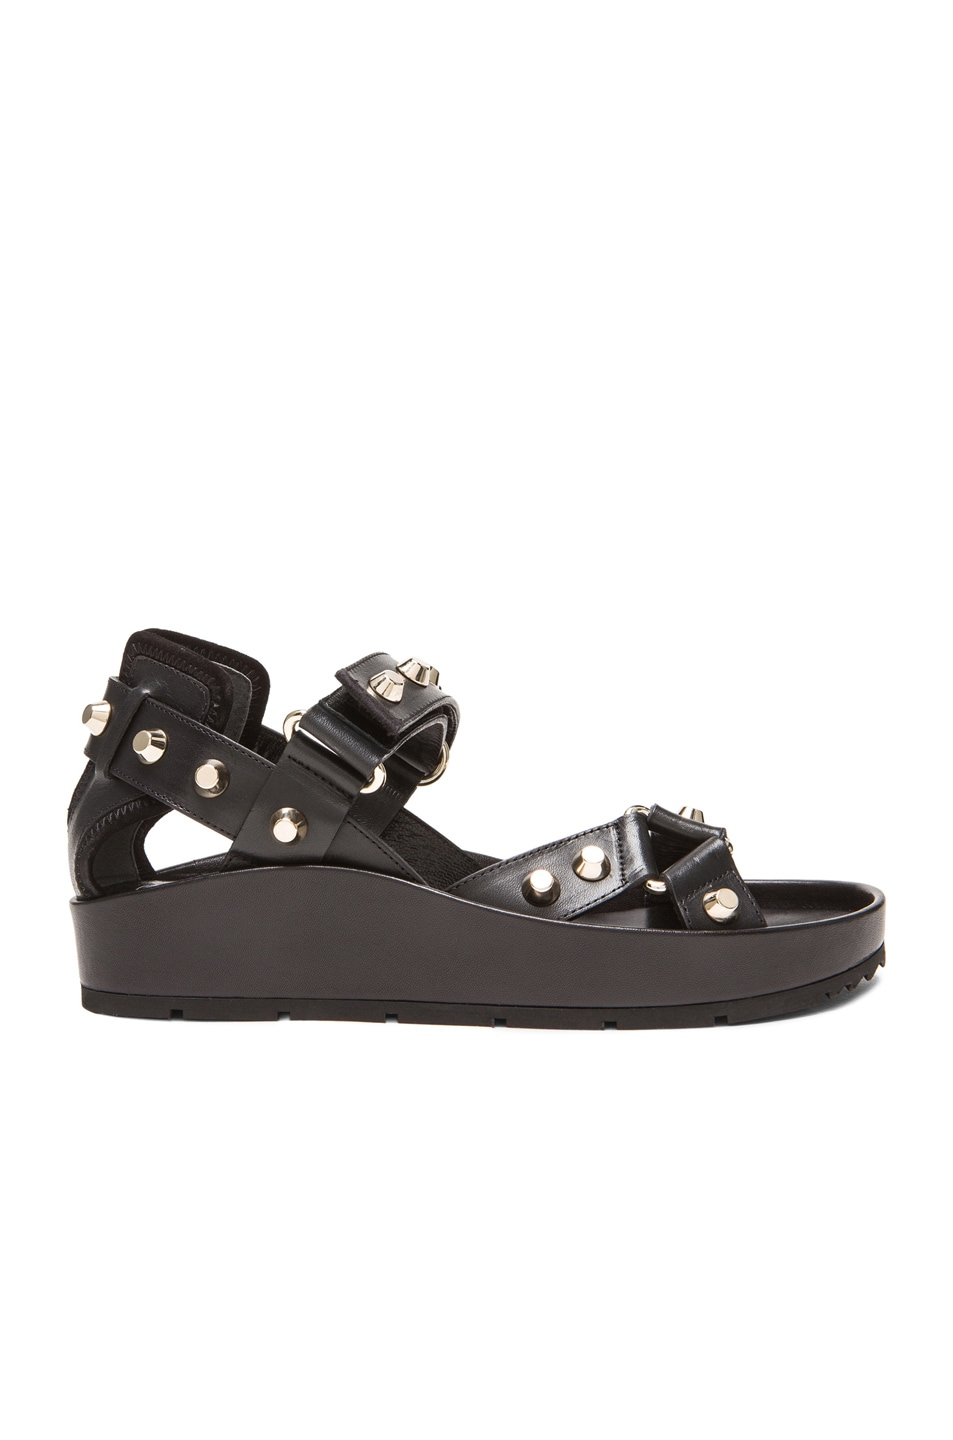 Image 1 of Balenciaga Studded Leather Ankle Strap Sandals in Black